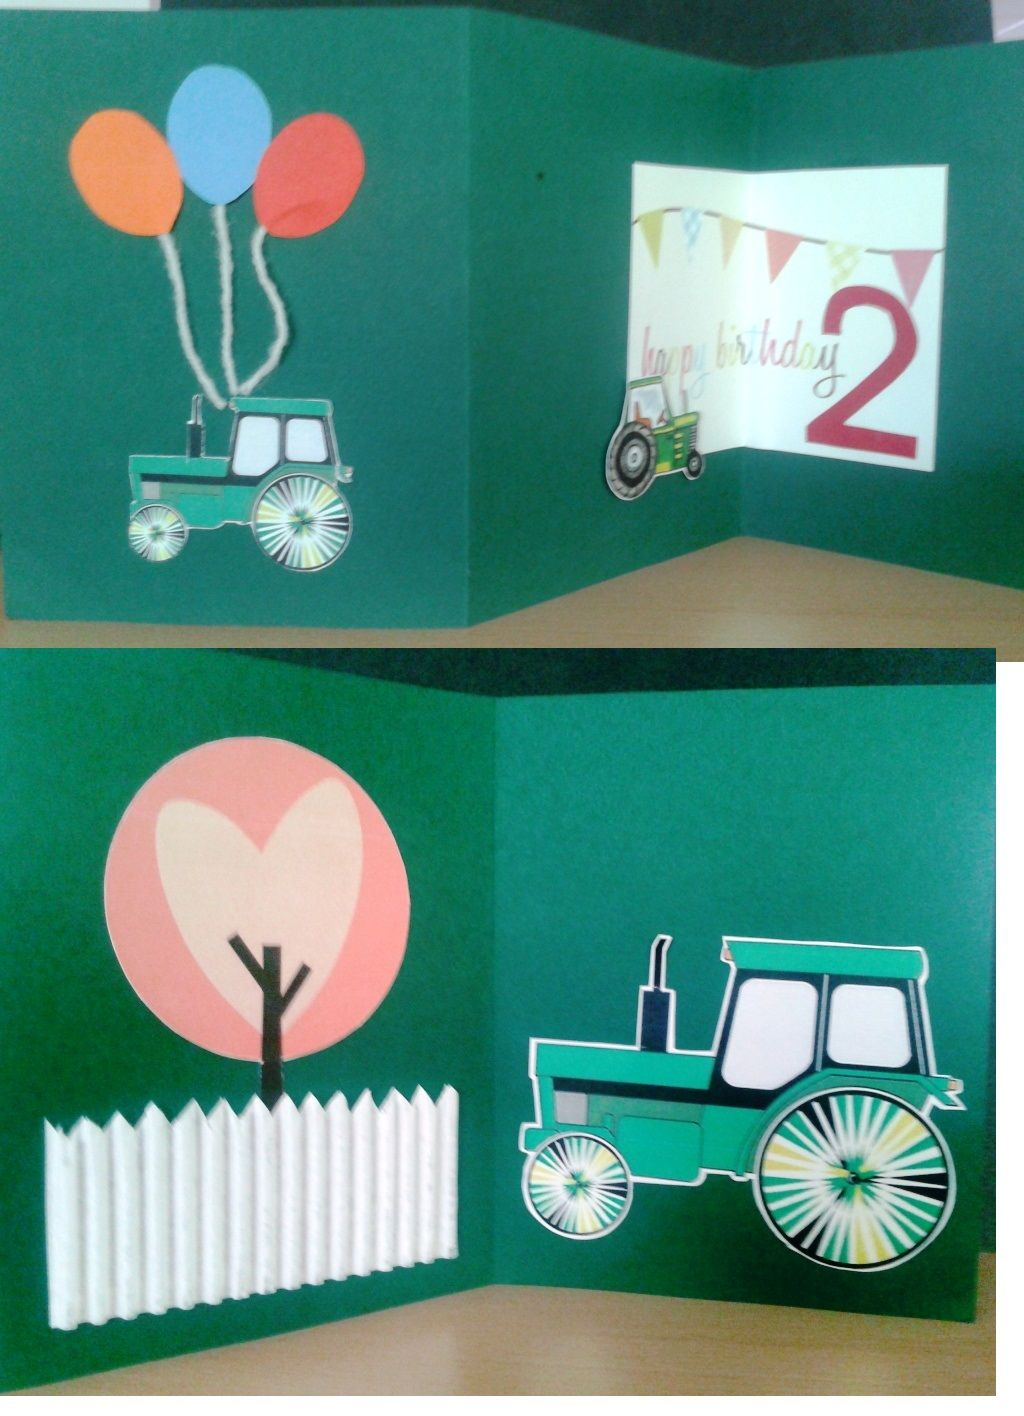 Tractor Theme Hapy Birthday Card For 2 Years Old Boy